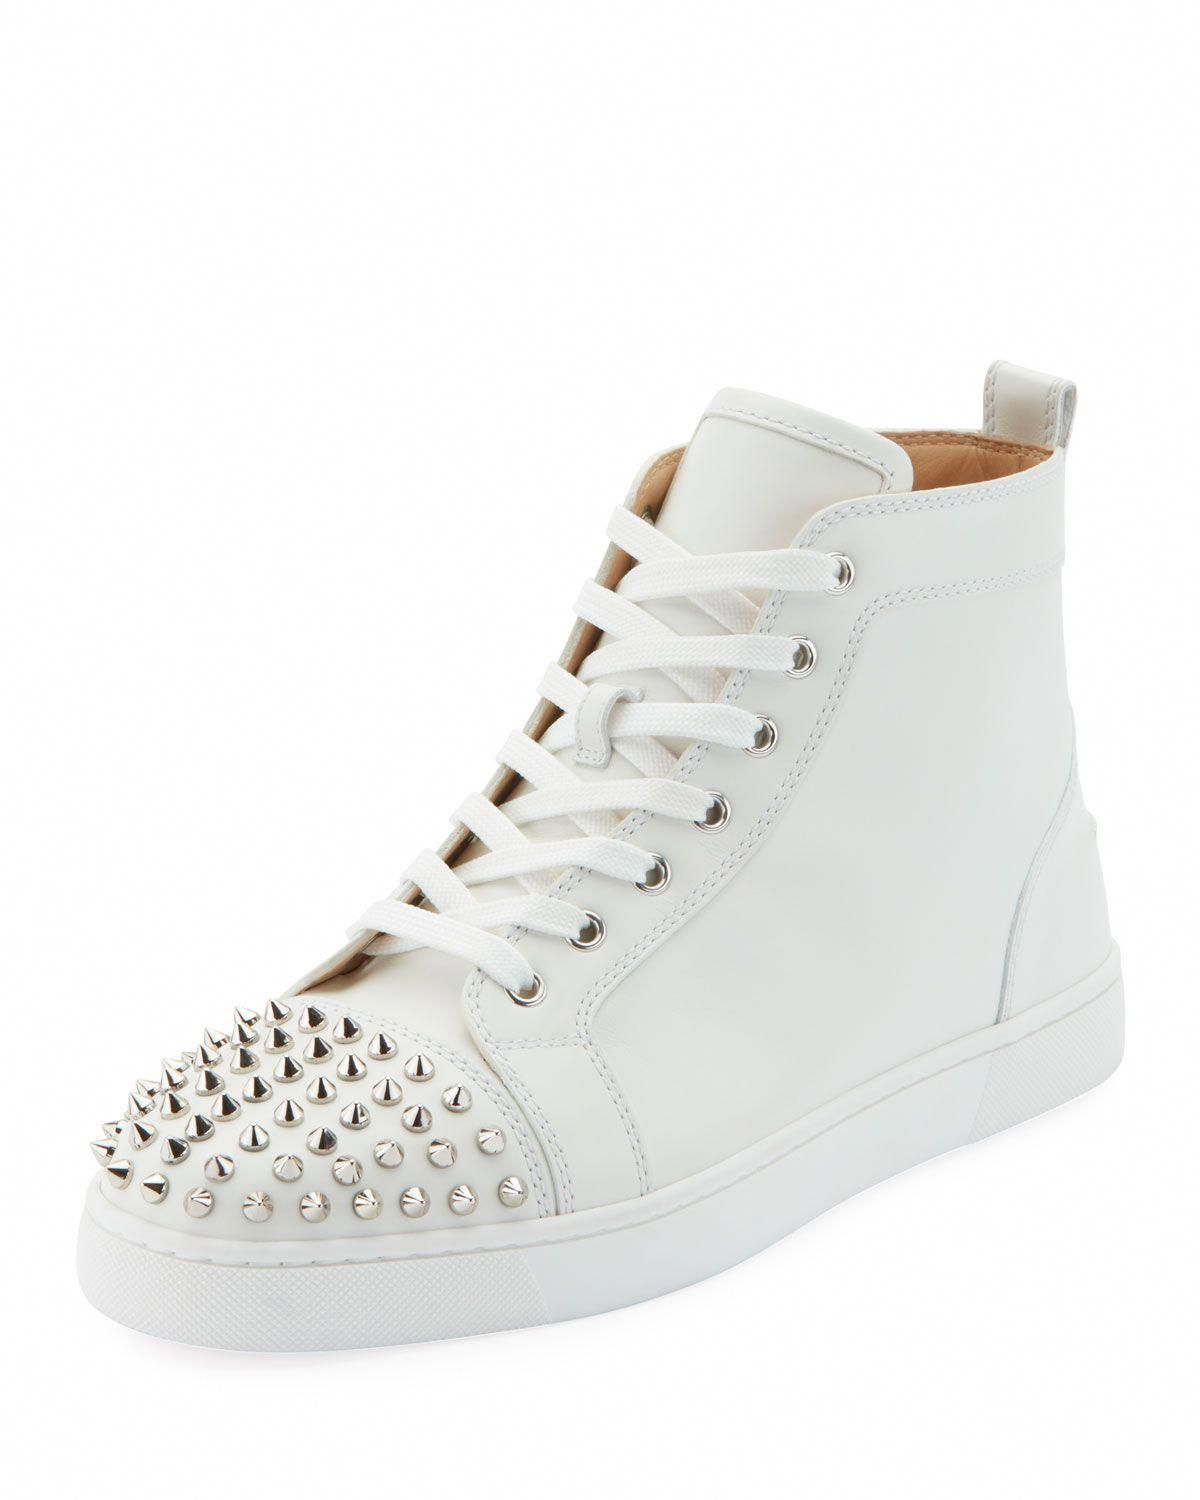 9f3967c7138f CHRISTIAN LOUBOUTIN MEN S LOU SPIKES HIGH-TOP SNEAKERS.  christianlouboutin   shoes